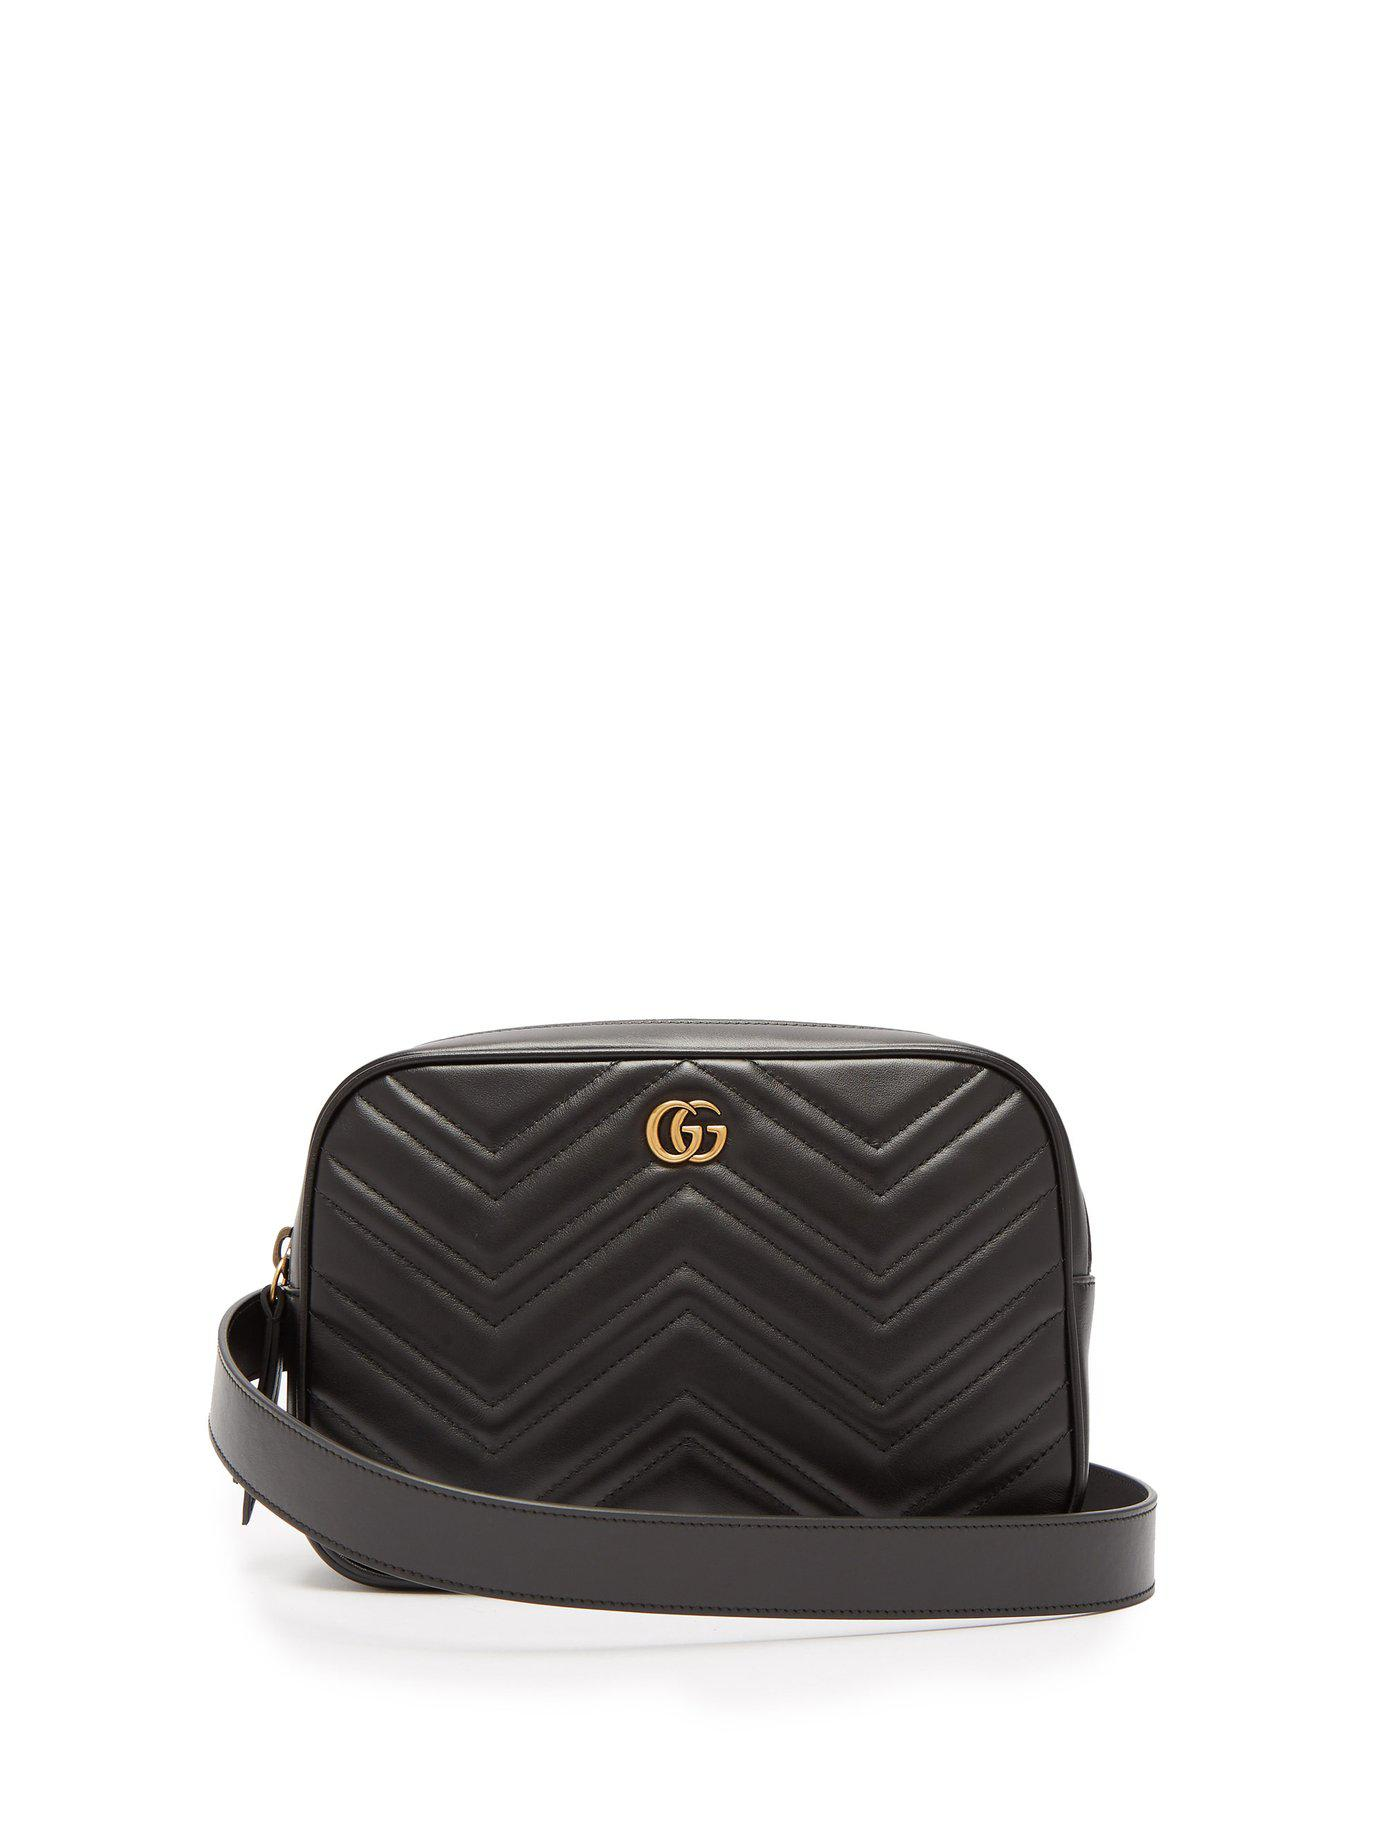 de3e75169f7a8 Lyst - Gucci Gg Marmont Quilted Leather Belt Bag in Black for Men